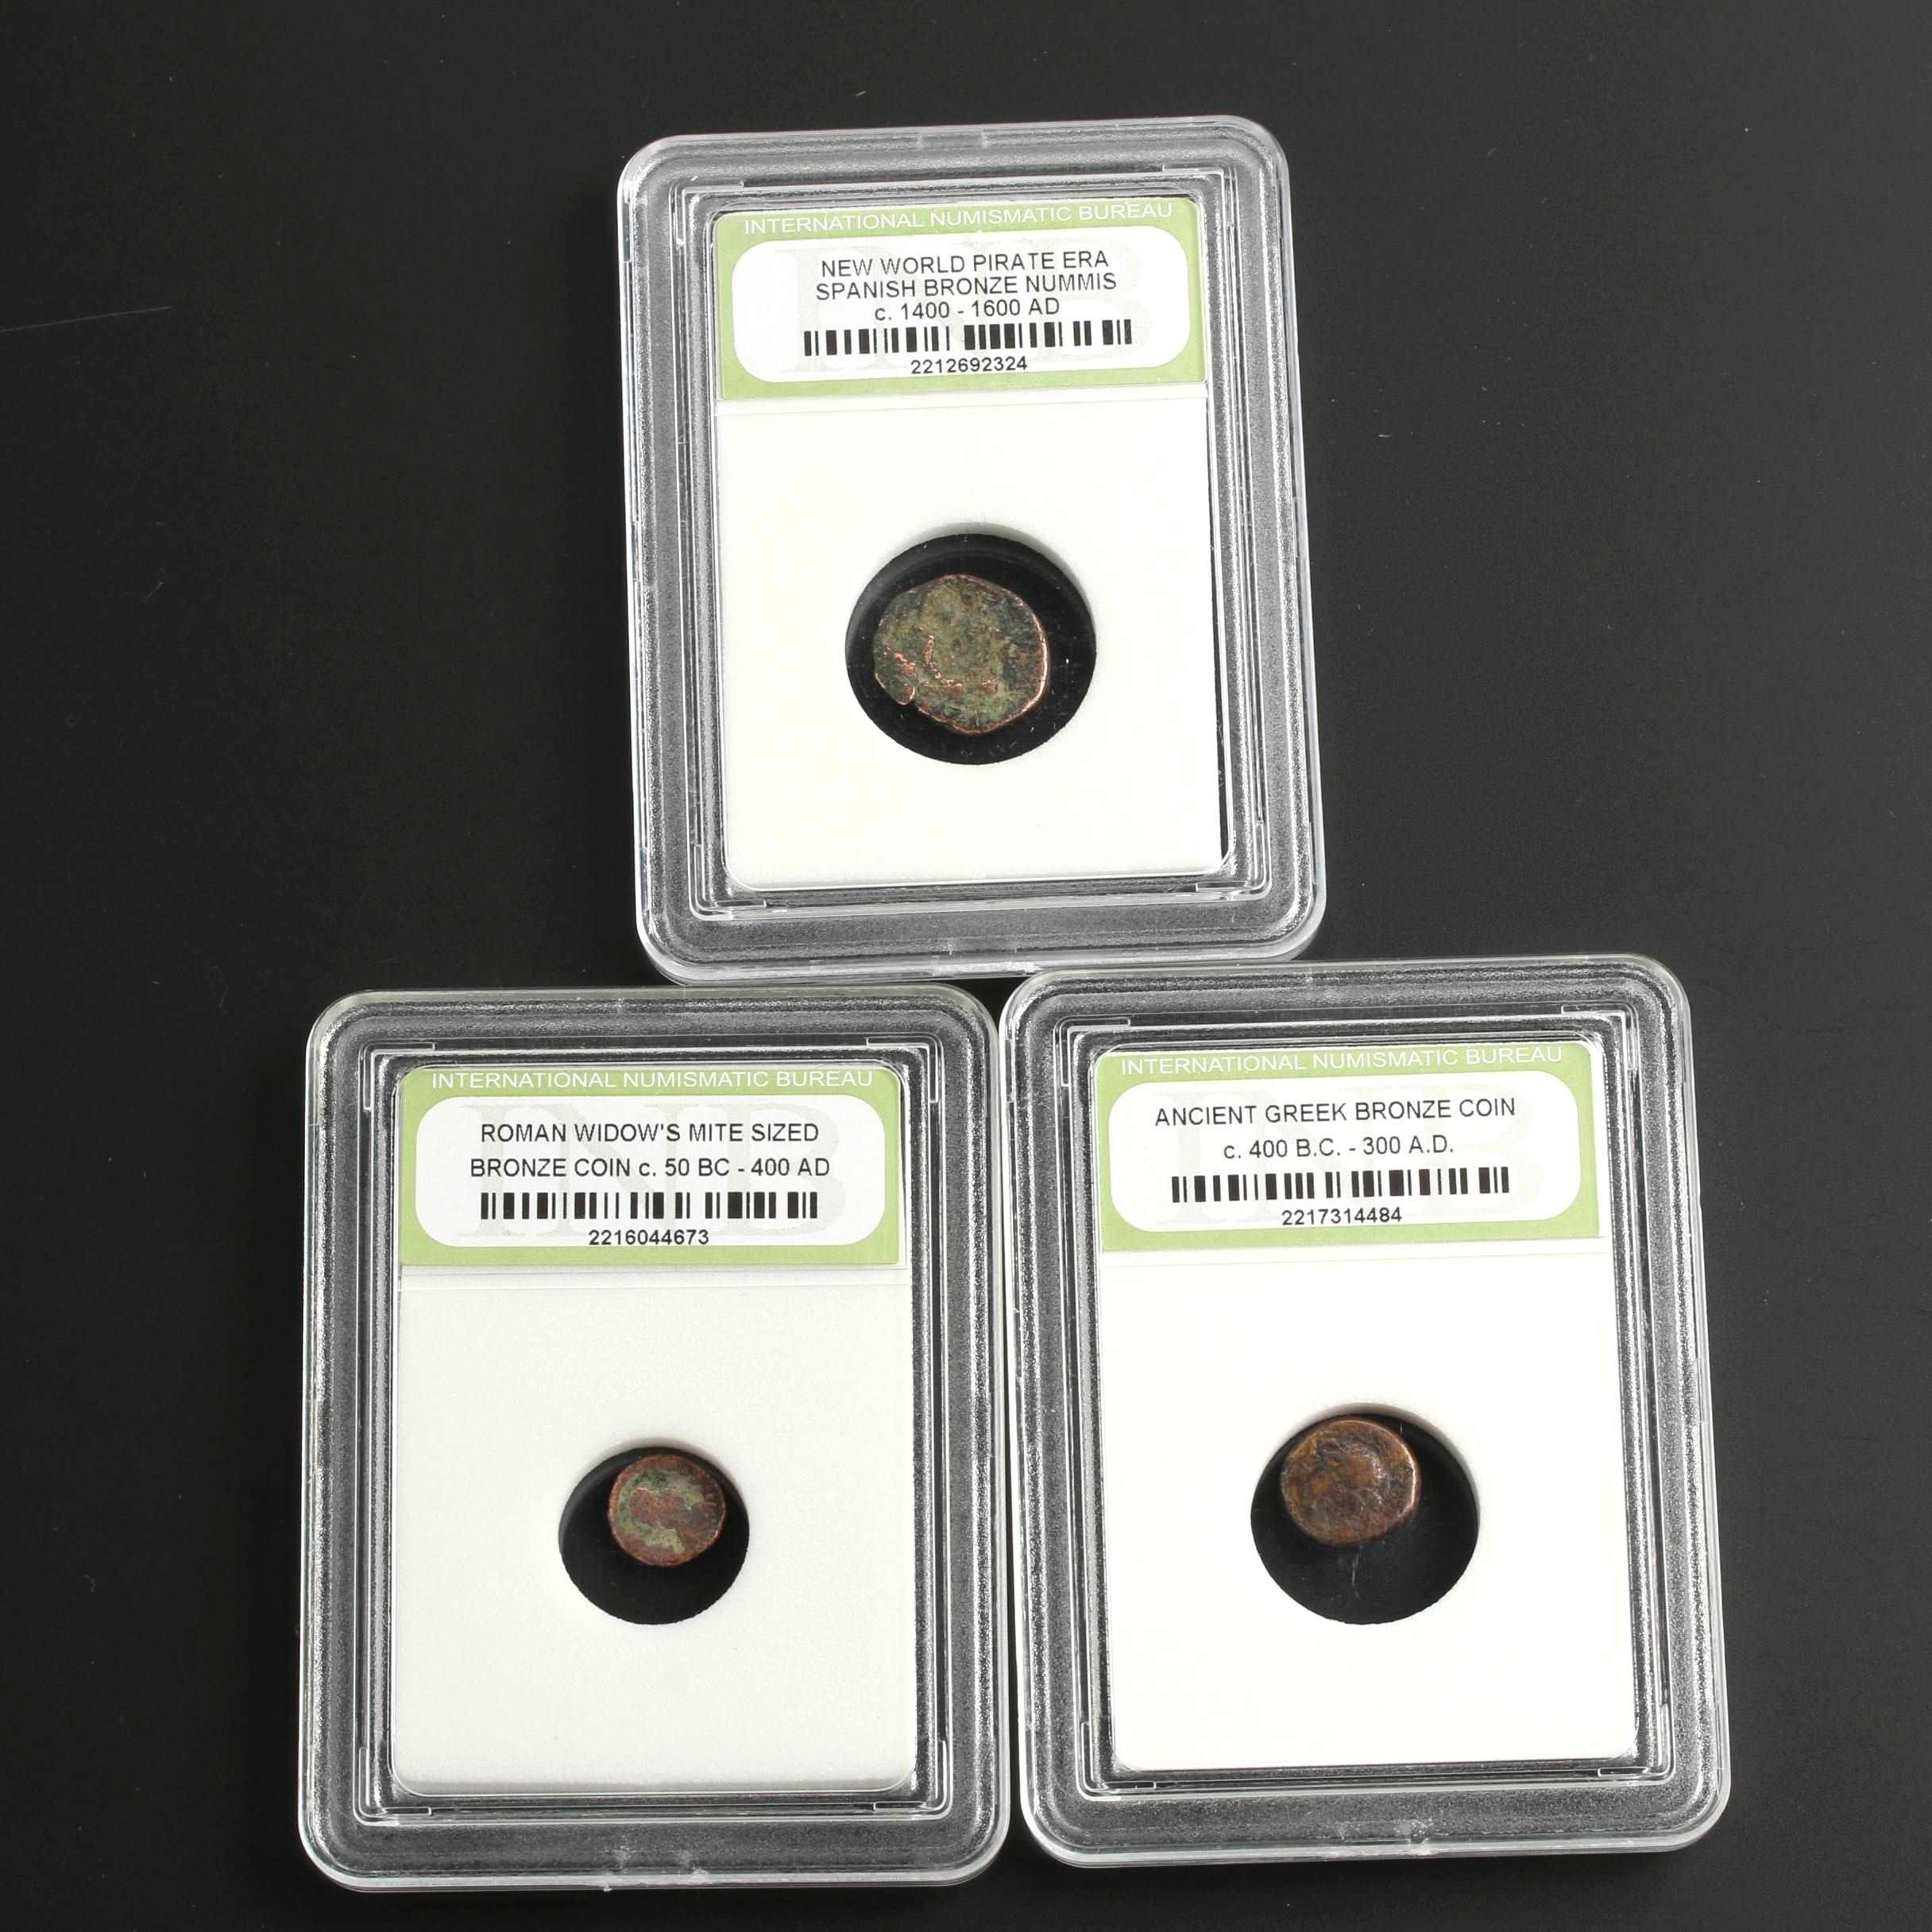 Group of Three Historic Coins Including a Roman Widow's Mite Sized Bronze Coin